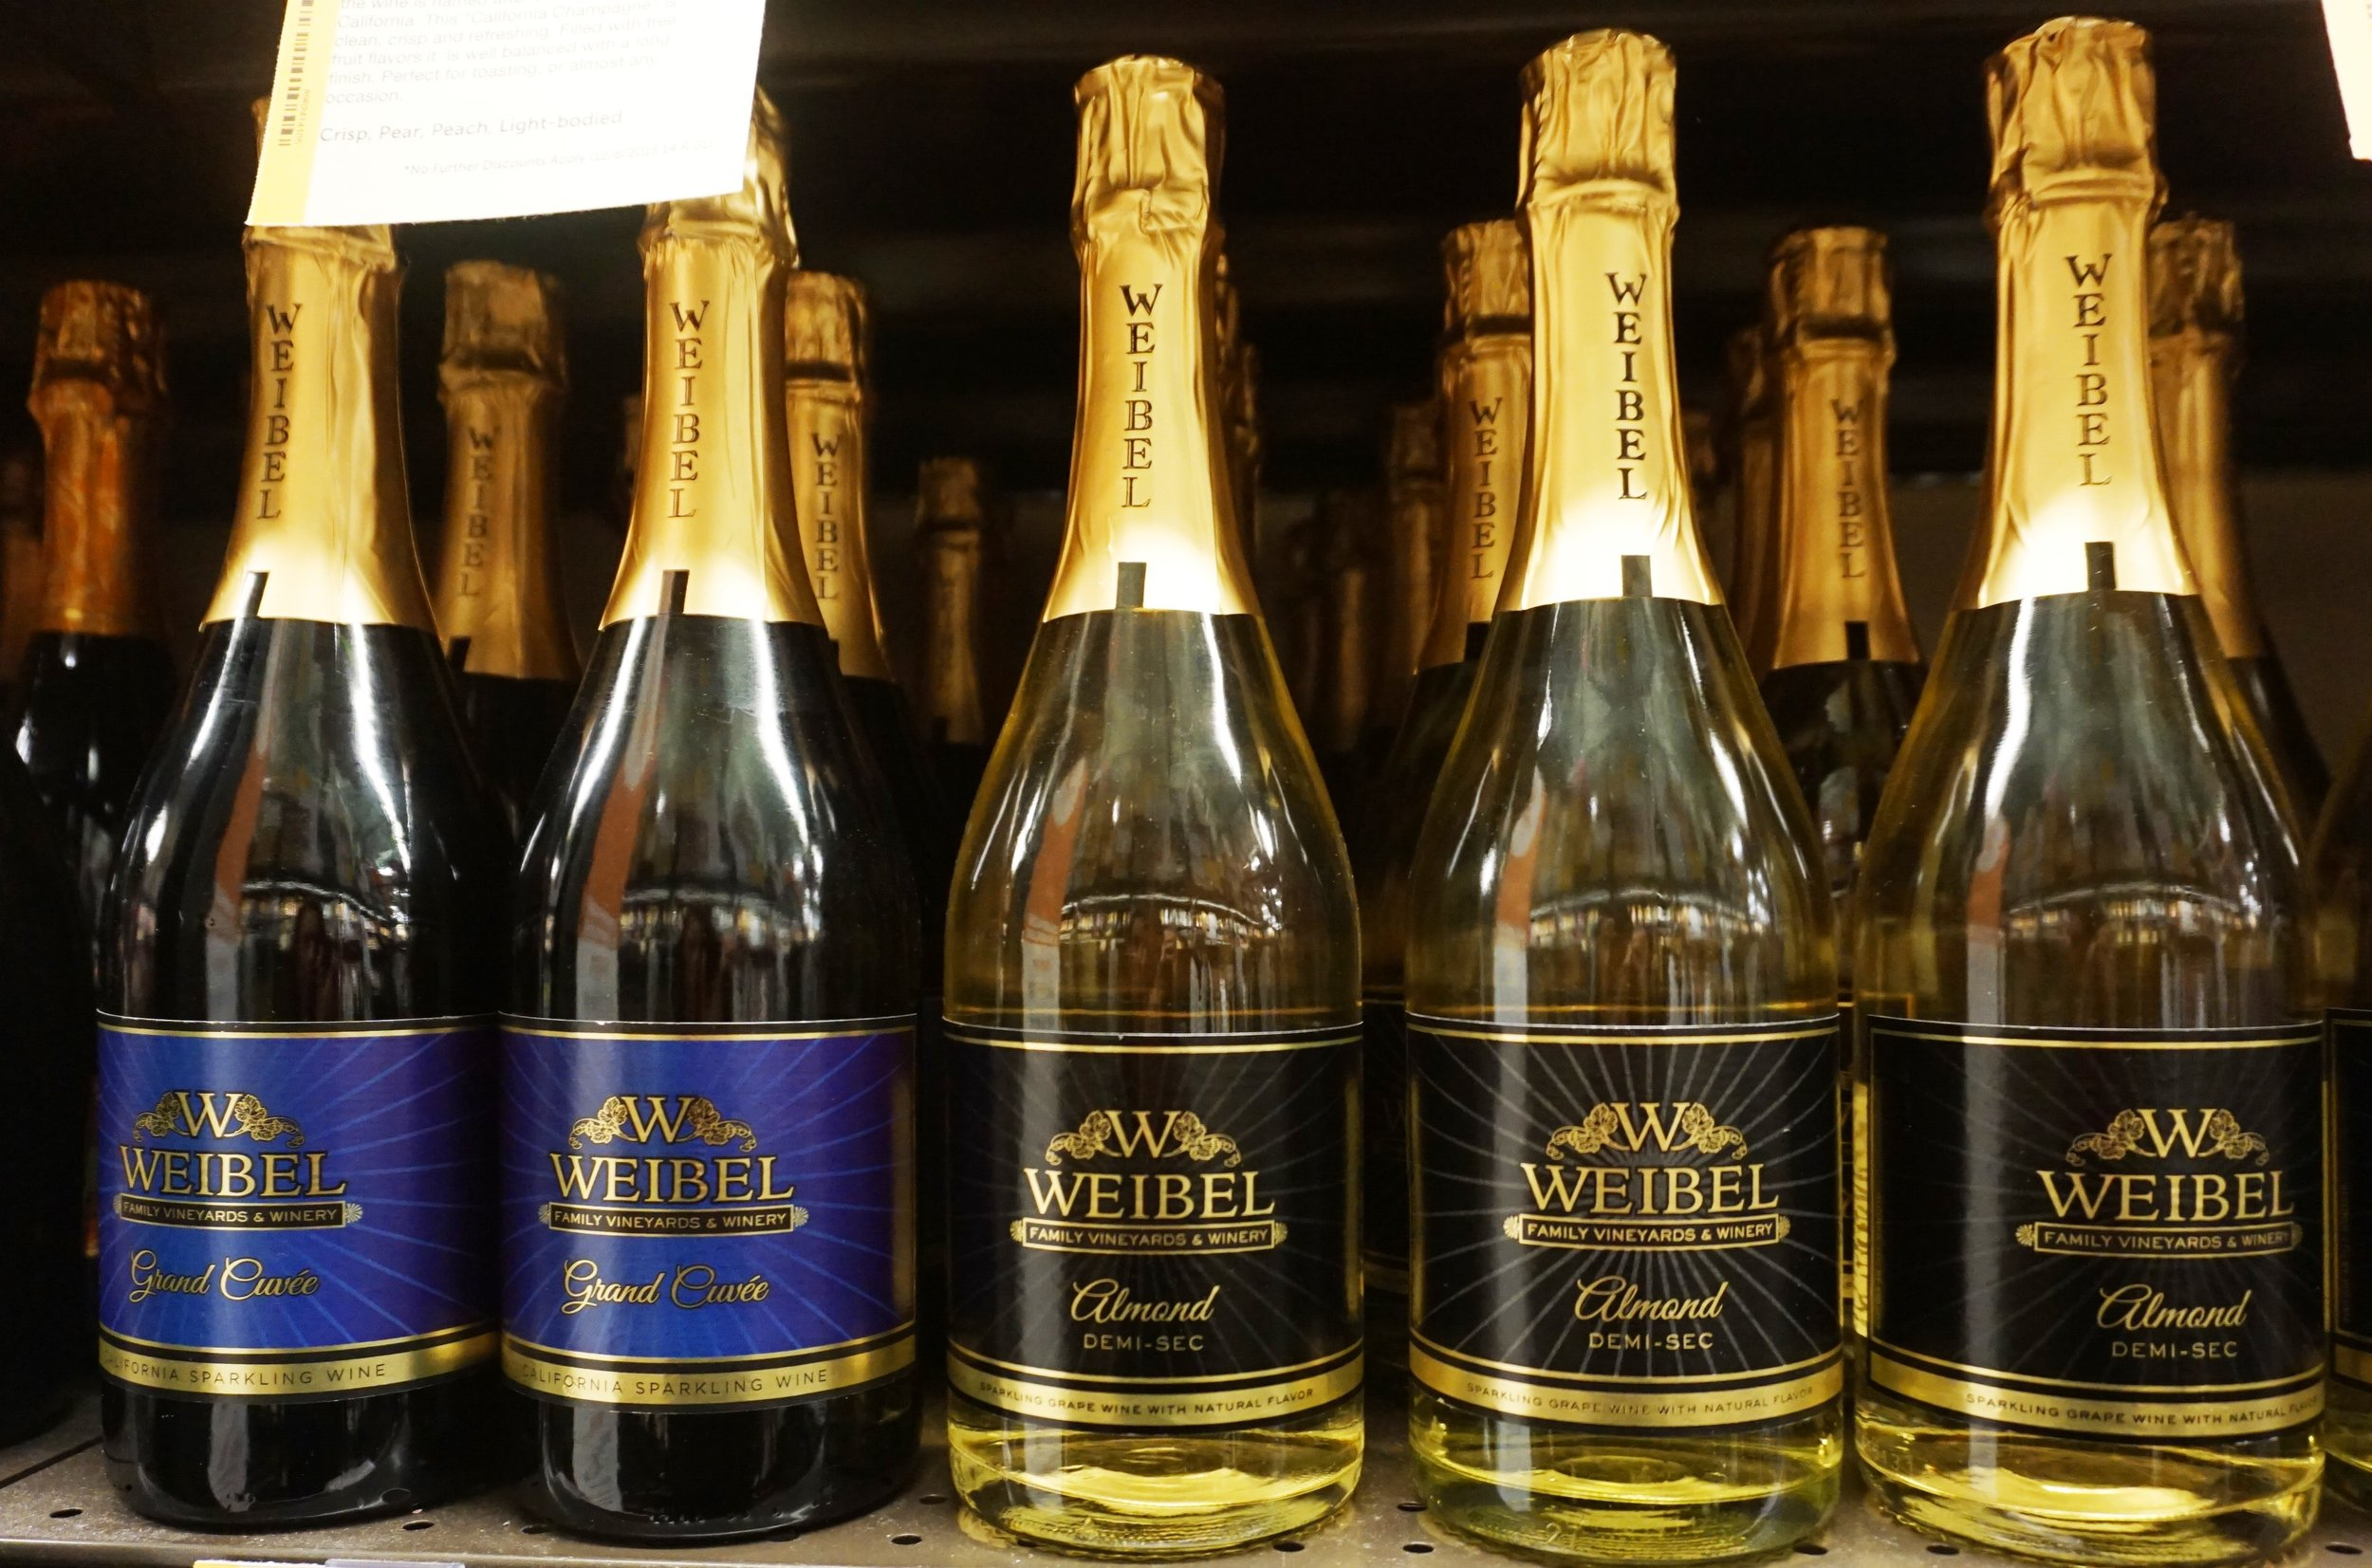 In addition to Weibel Grand Cuvee NV, Total Wine also carries all four of Weibel's flavored sparklings. Viki Eierdam